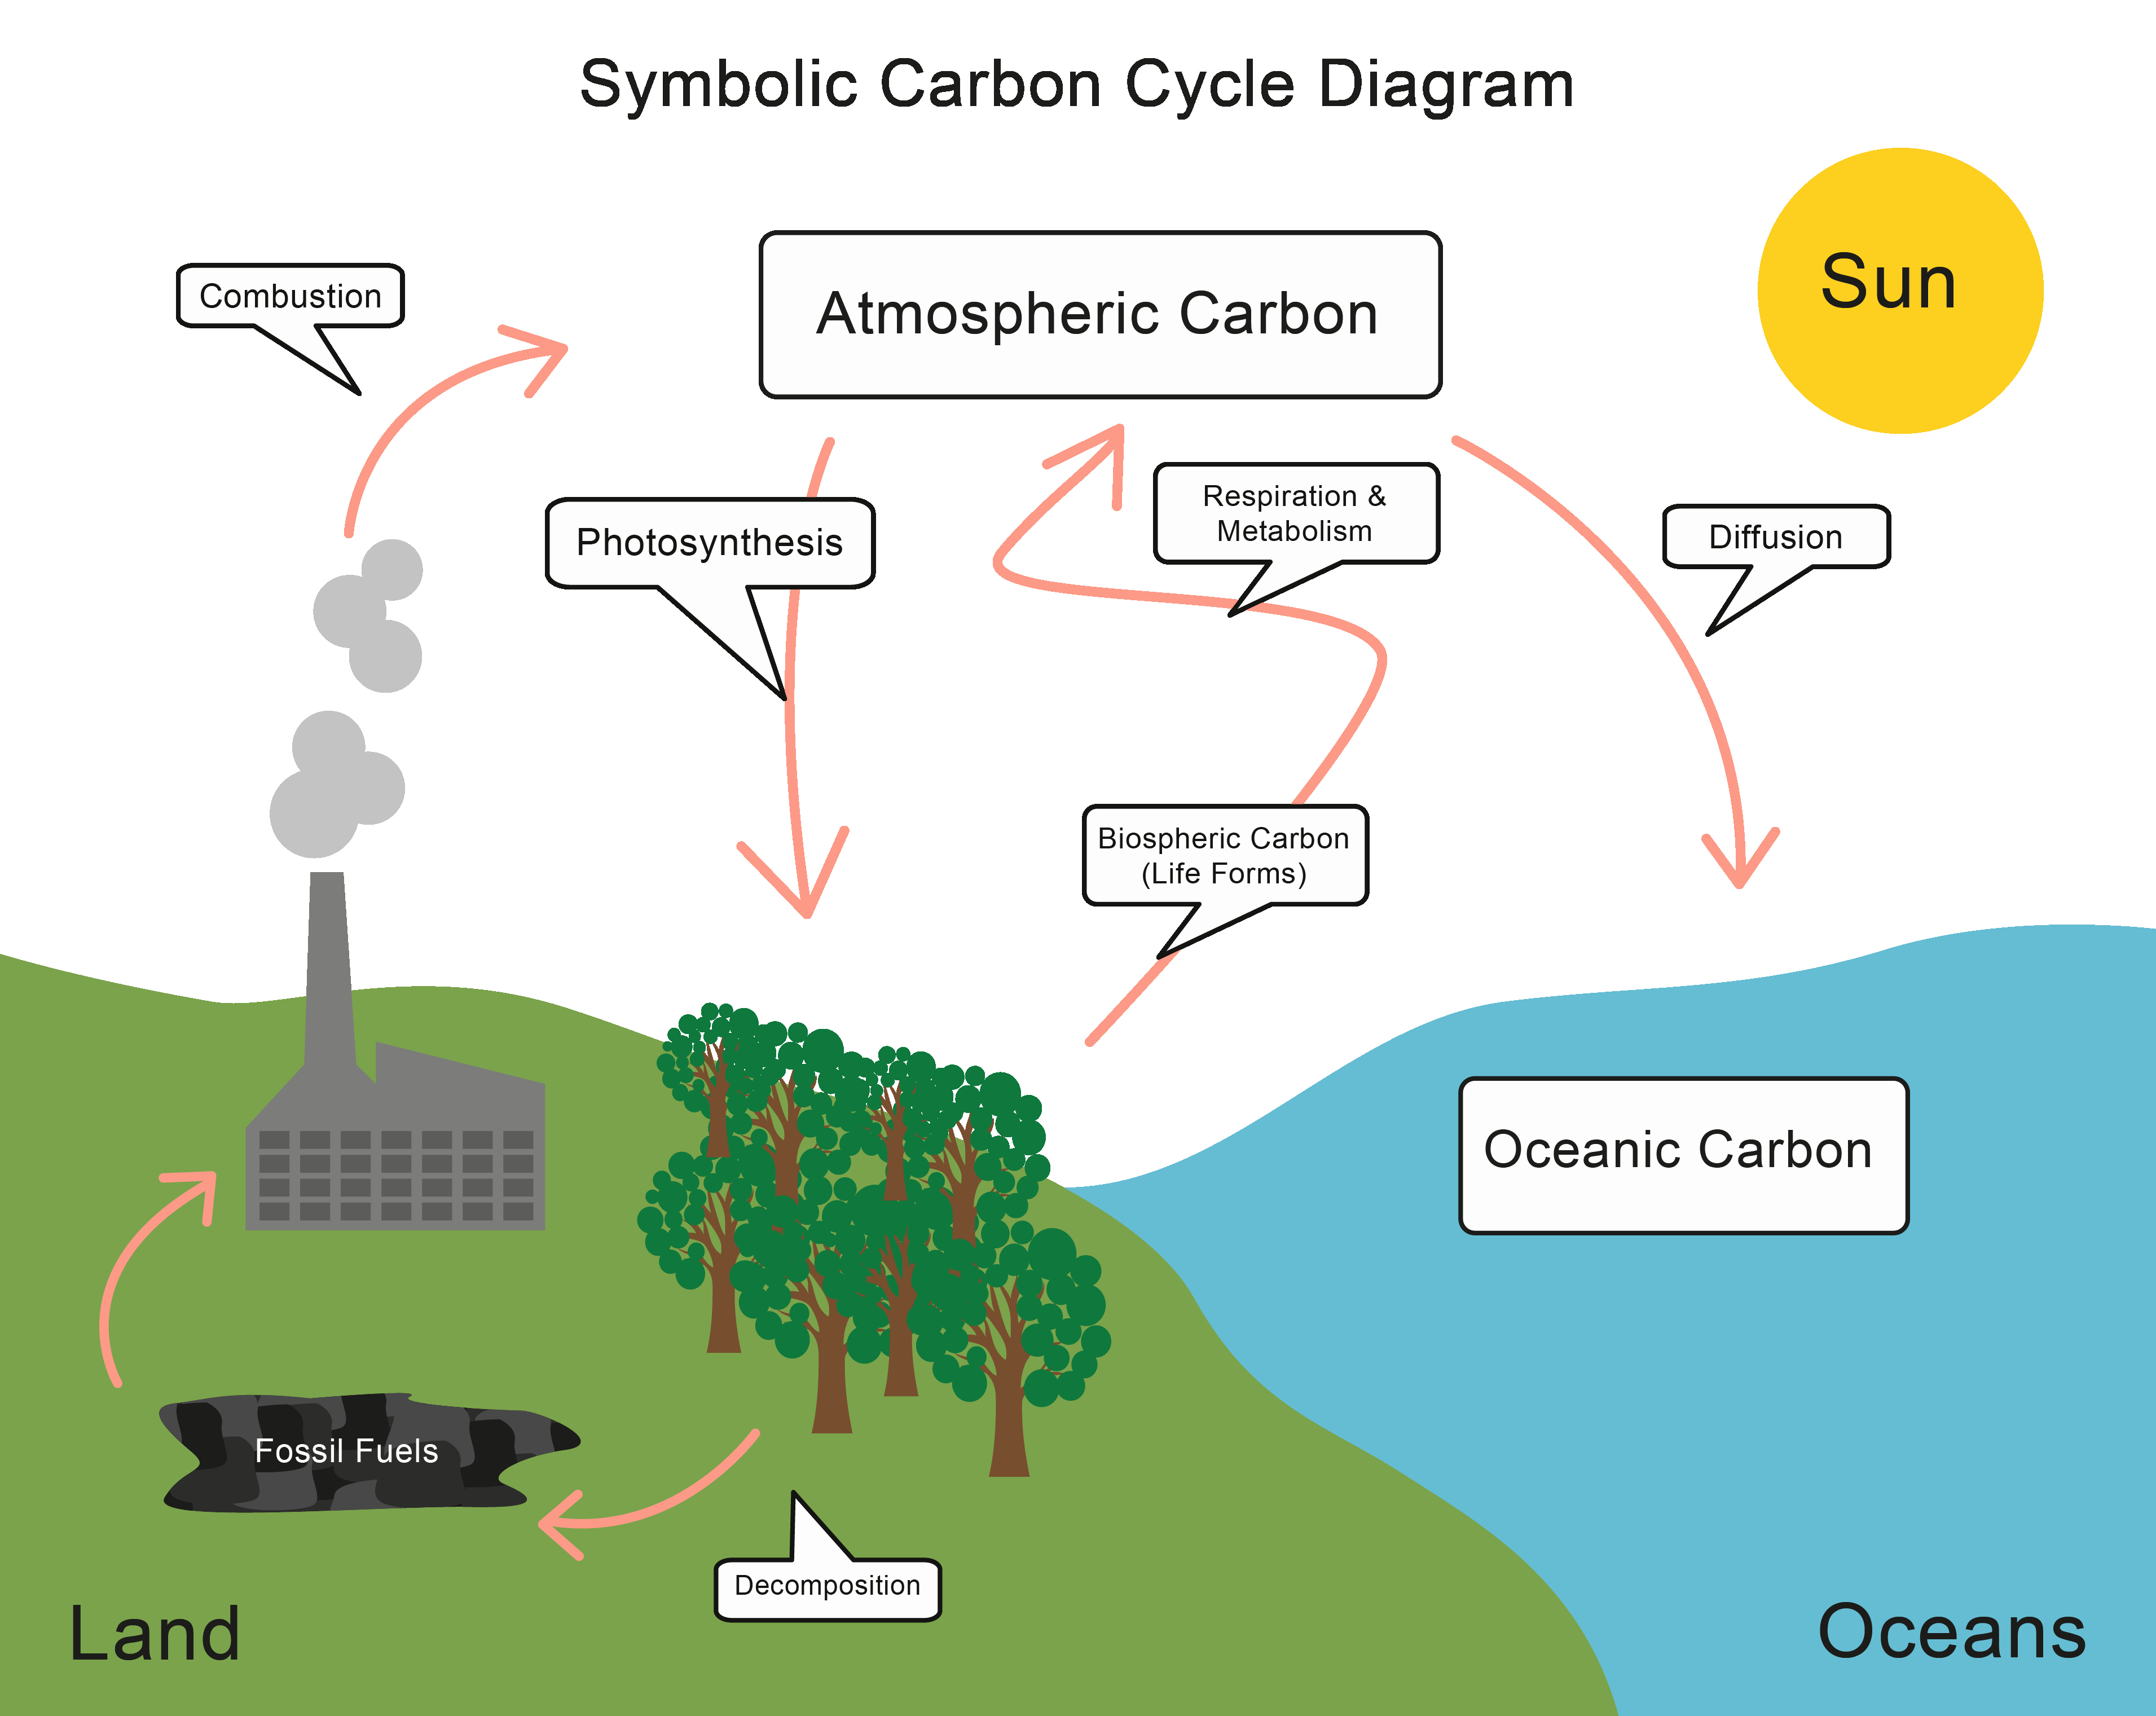 Carbon Cycle Diagram Worksheet New Worksheet Carbon Cycle Diagram Worksheet Grass Fedjp